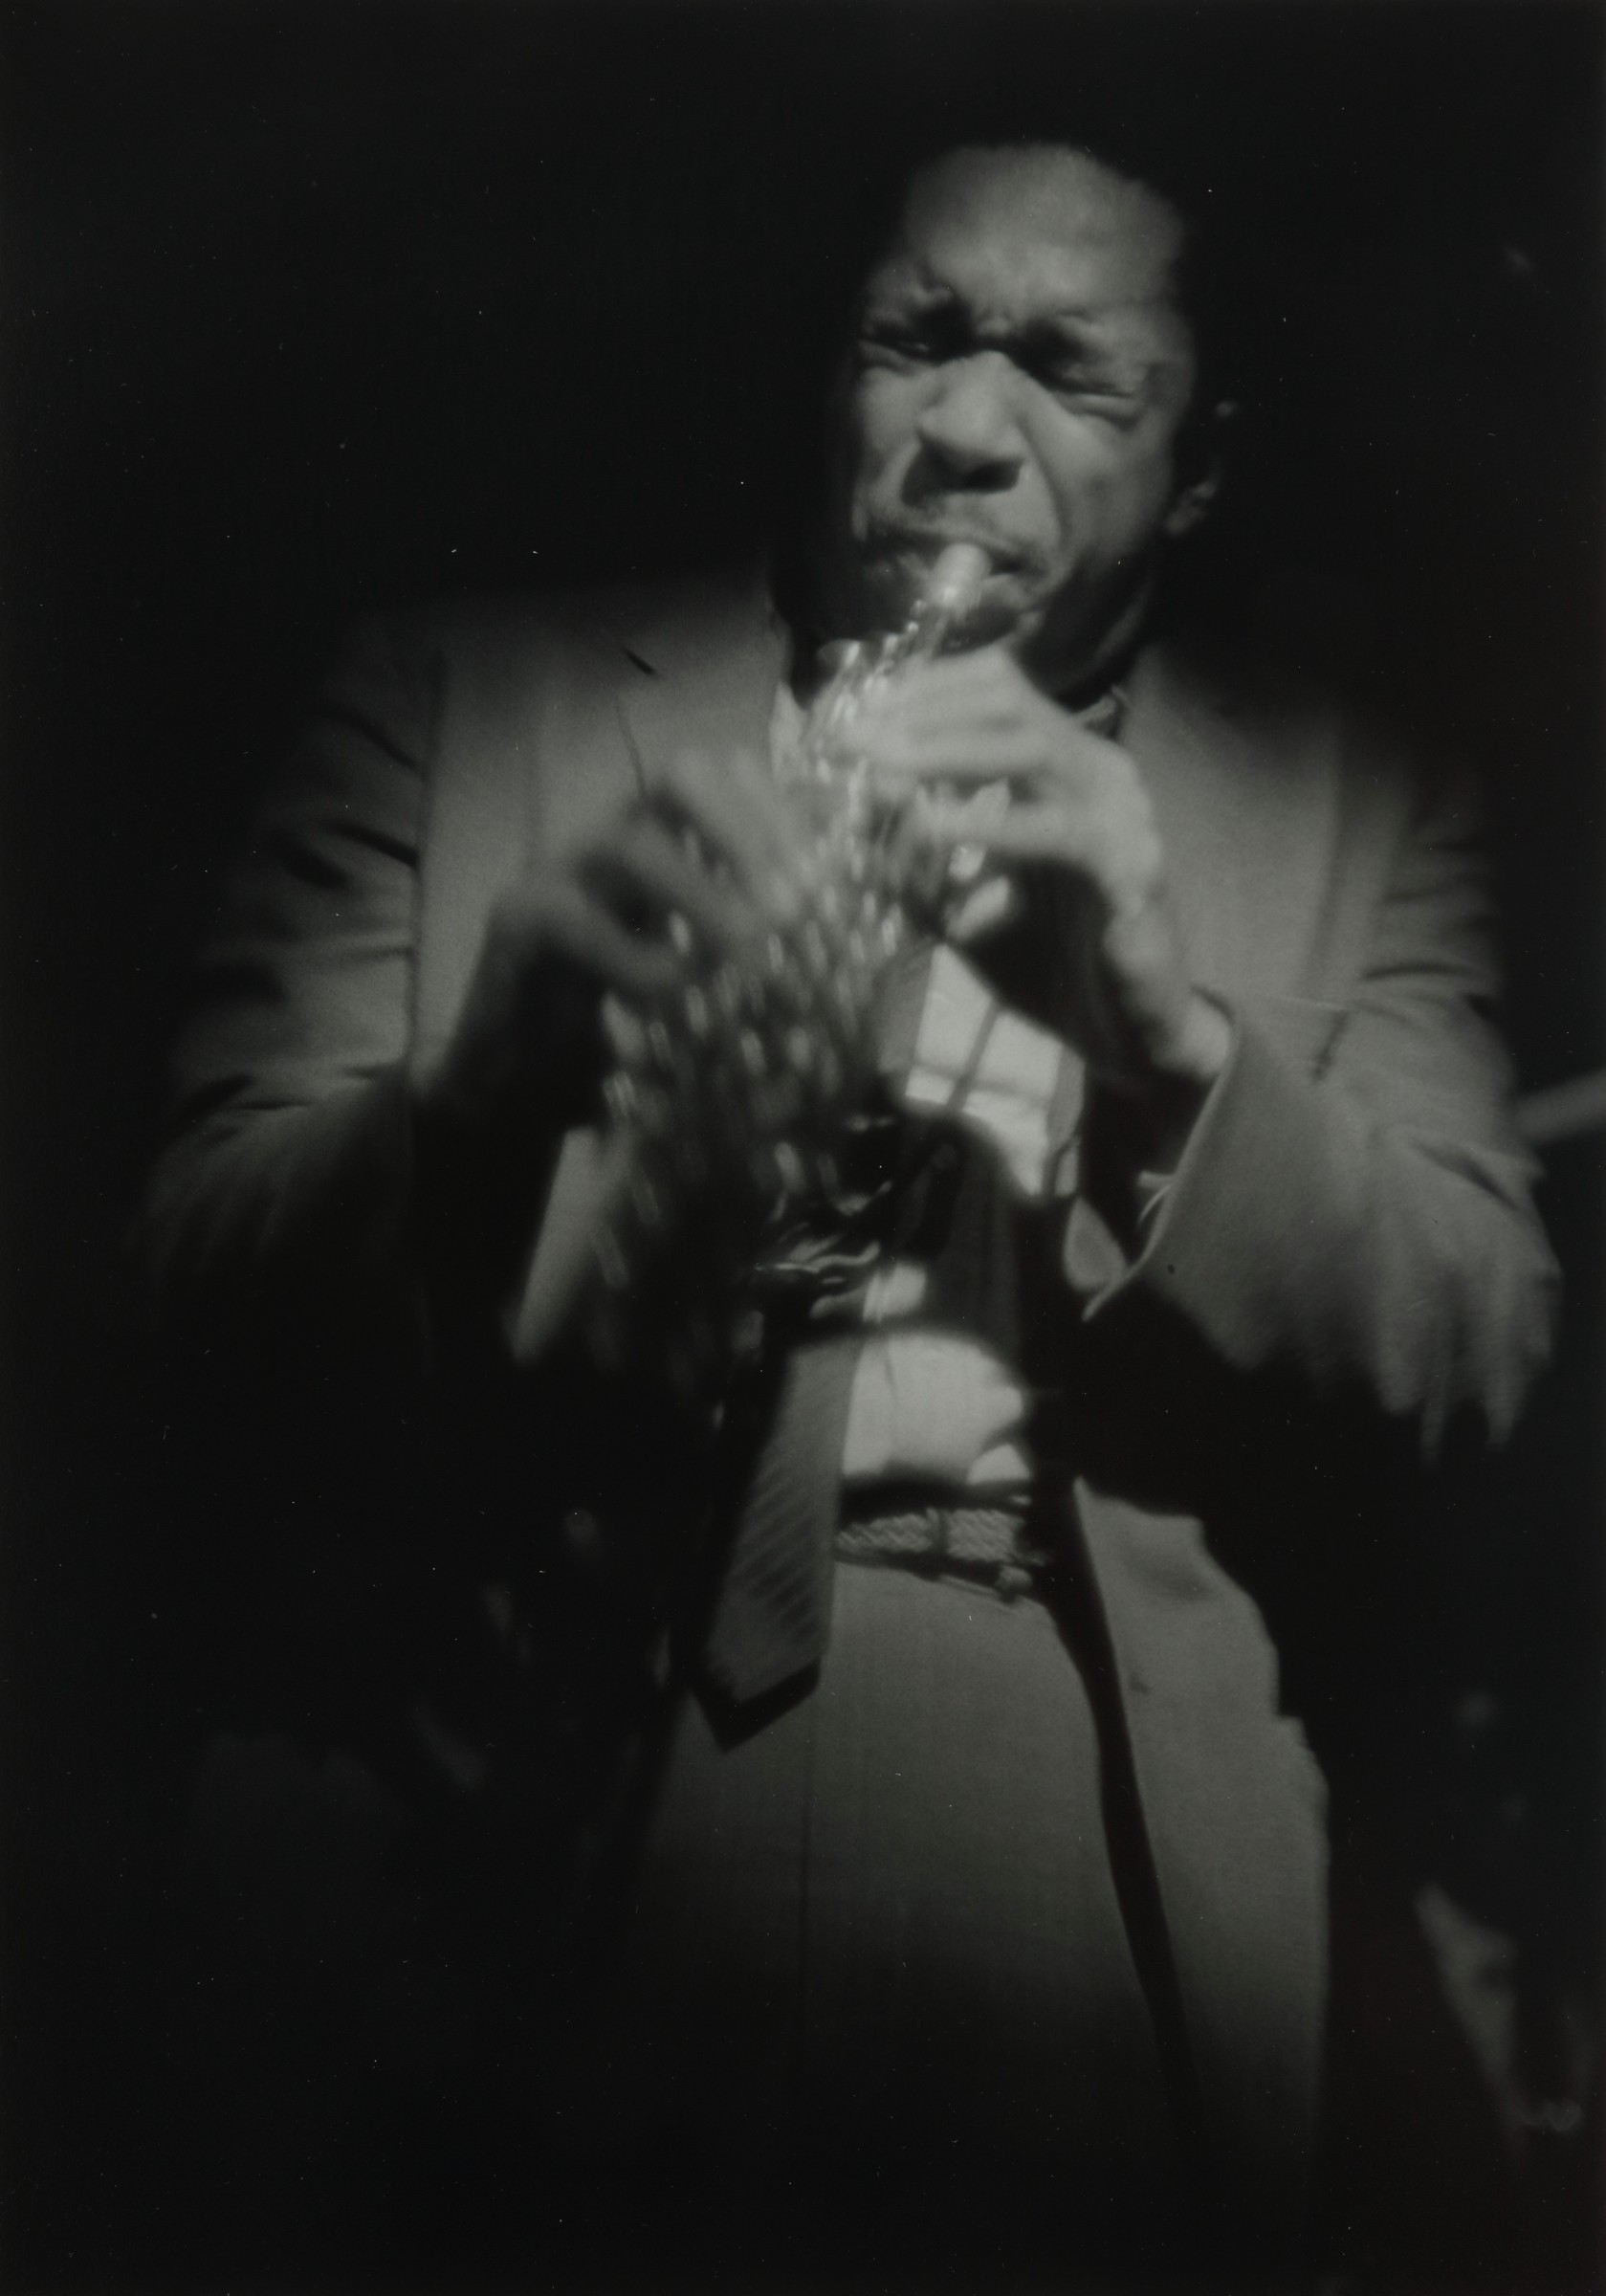 Photograph of John Coltrane playing a saxophone and moving around.